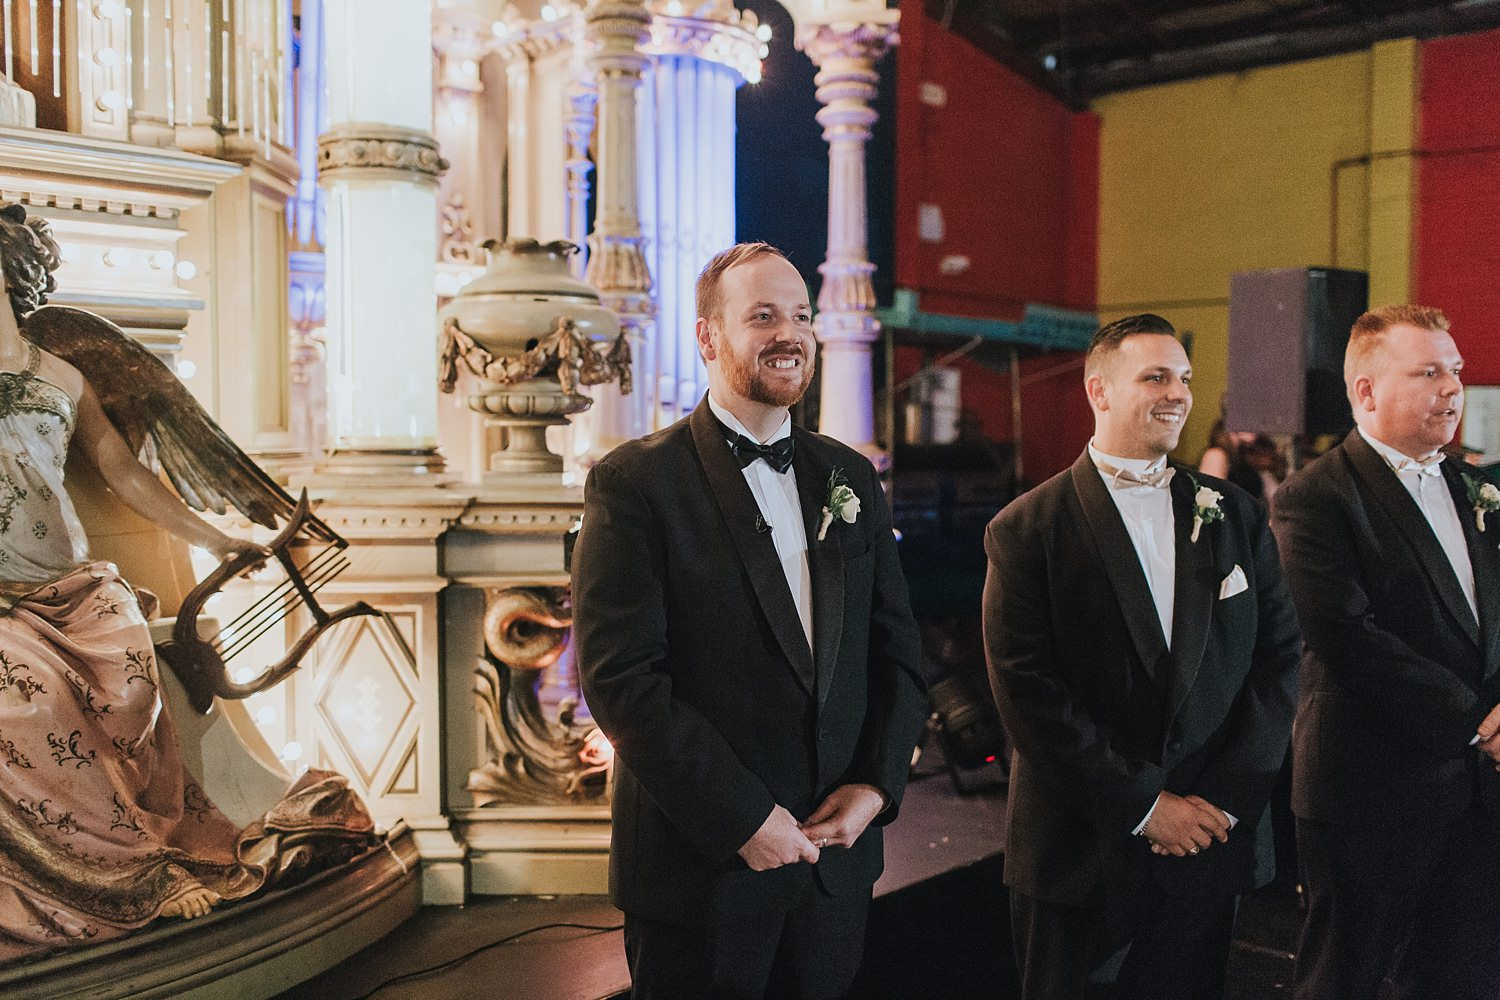 groom waiting for his bride at fairground follies wedding reception